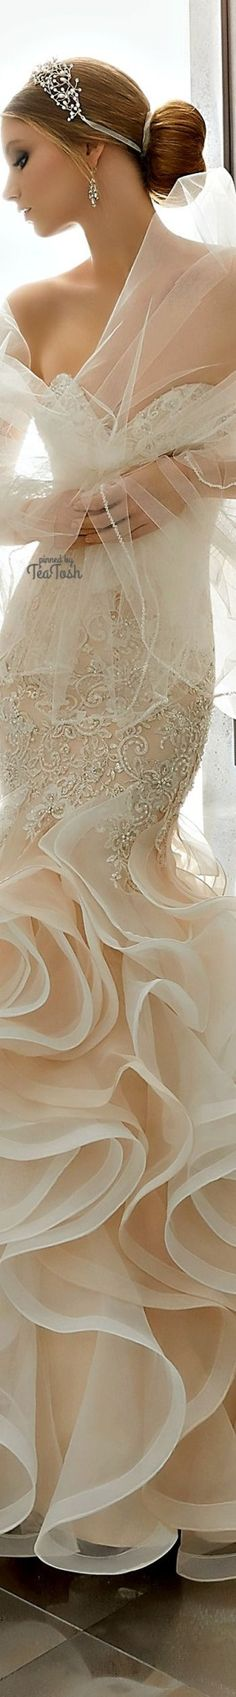 ❇Téa Tosh❇ (Front) Mirjana Wedding Dress My Perfect Wedding, Dream Wedding, Wedding Day, Wedding Beauty, Wedding Photos, Boudoir, Bridal Gowns, Wedding Dresses, Romantic Dresses